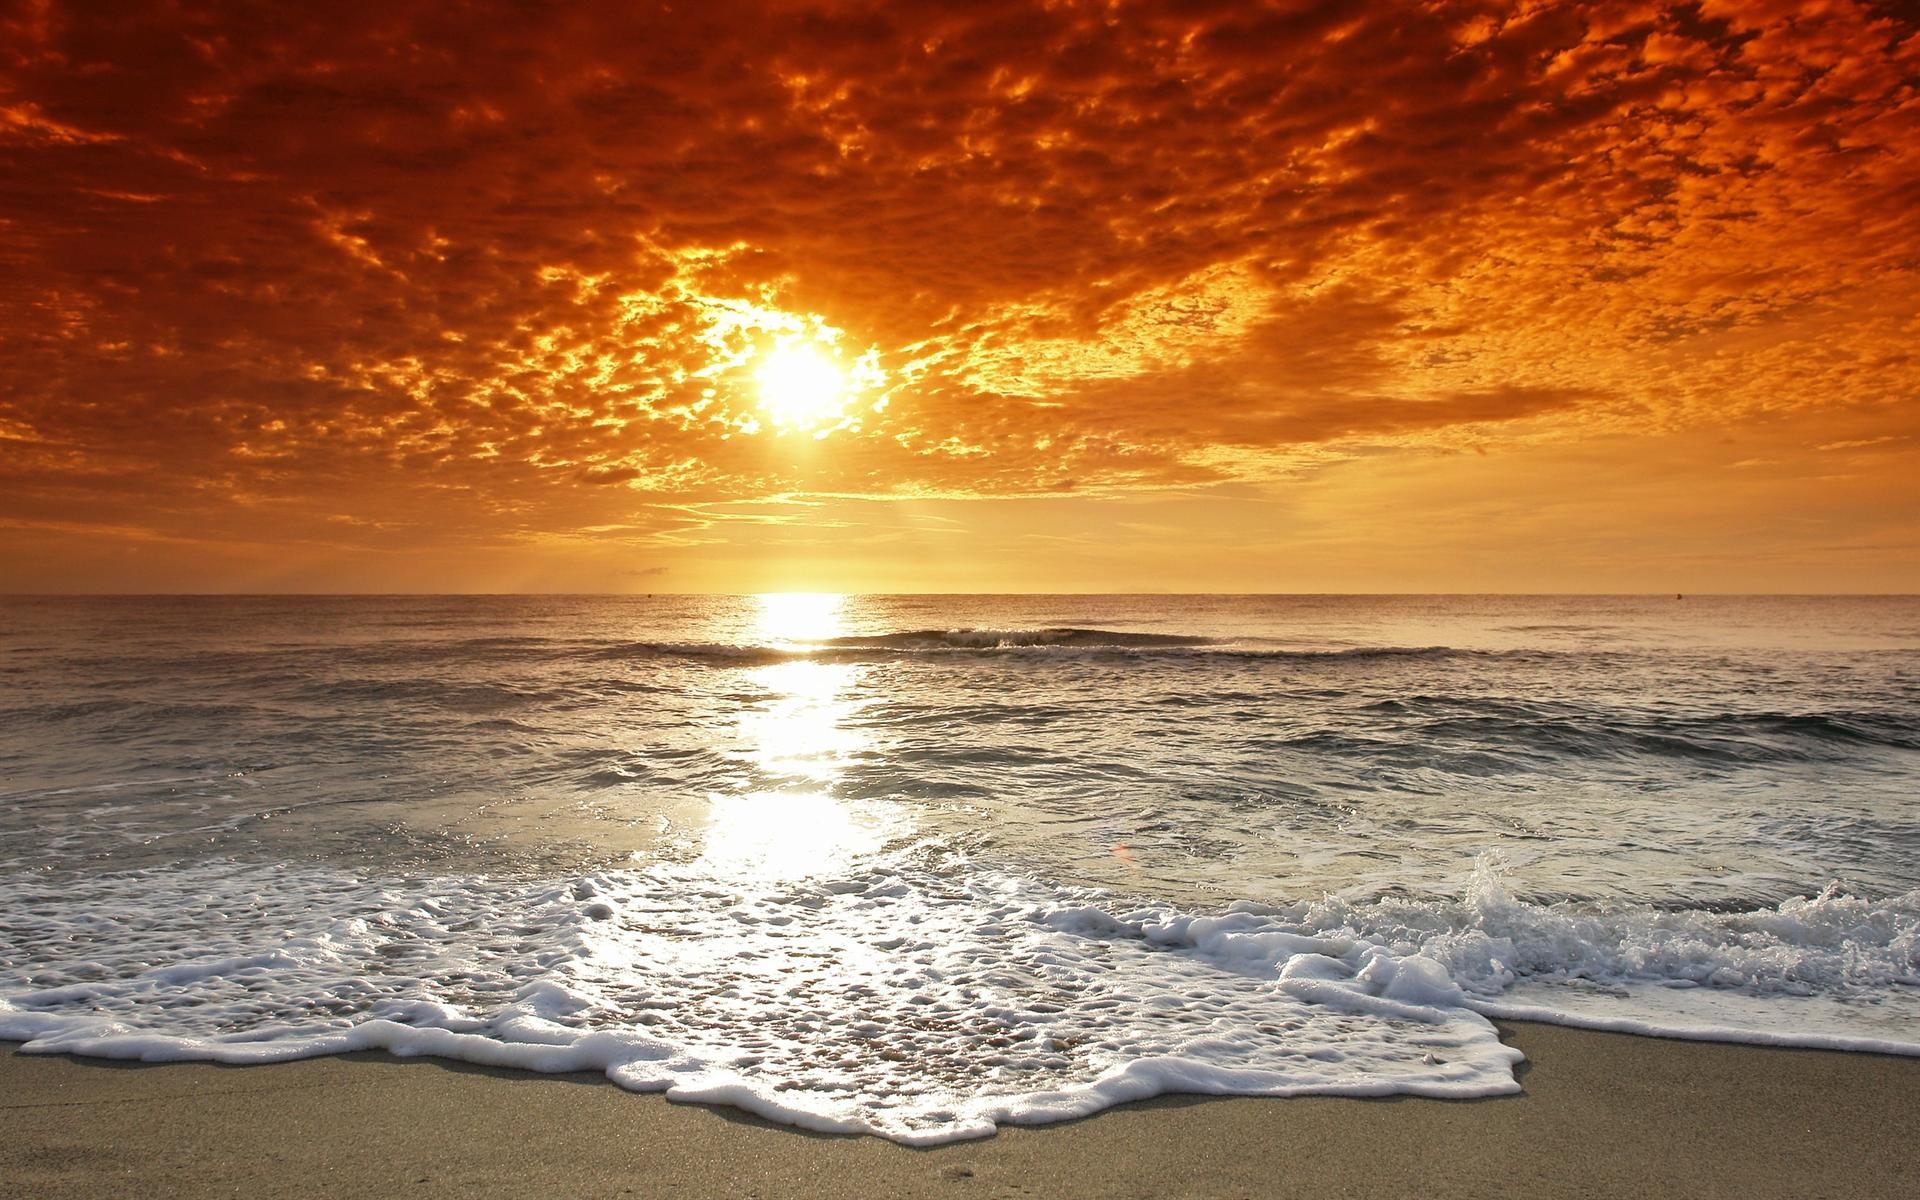 Download 1920x1200 Sunset Beach Tide Desktop 1920x1200